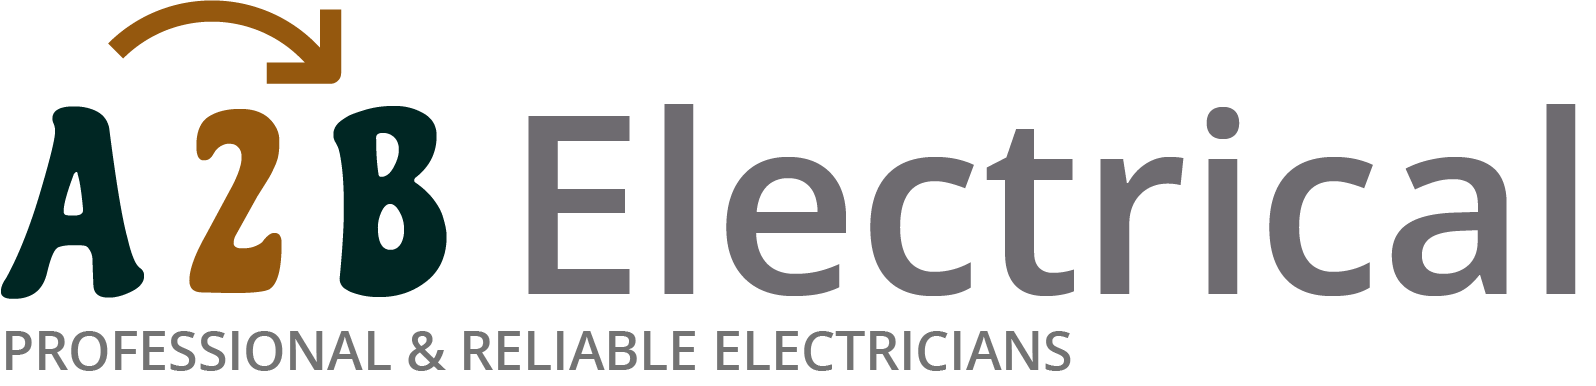 If you have electrical wiring problems in Colchester, we can provide an electrician to have a look for you.